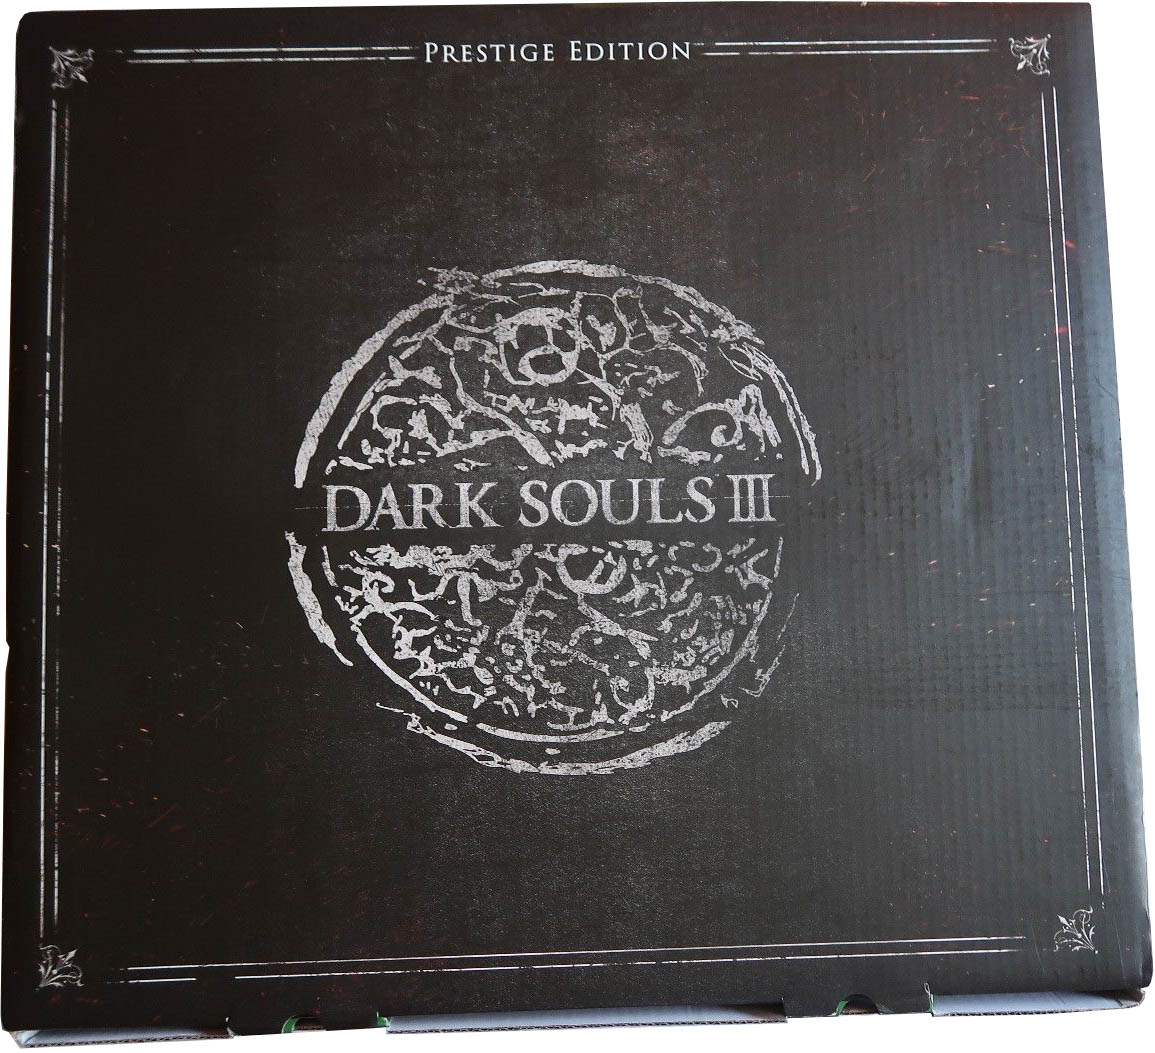 Dark Souls III (Prestige Edition) Xbox One издание в России